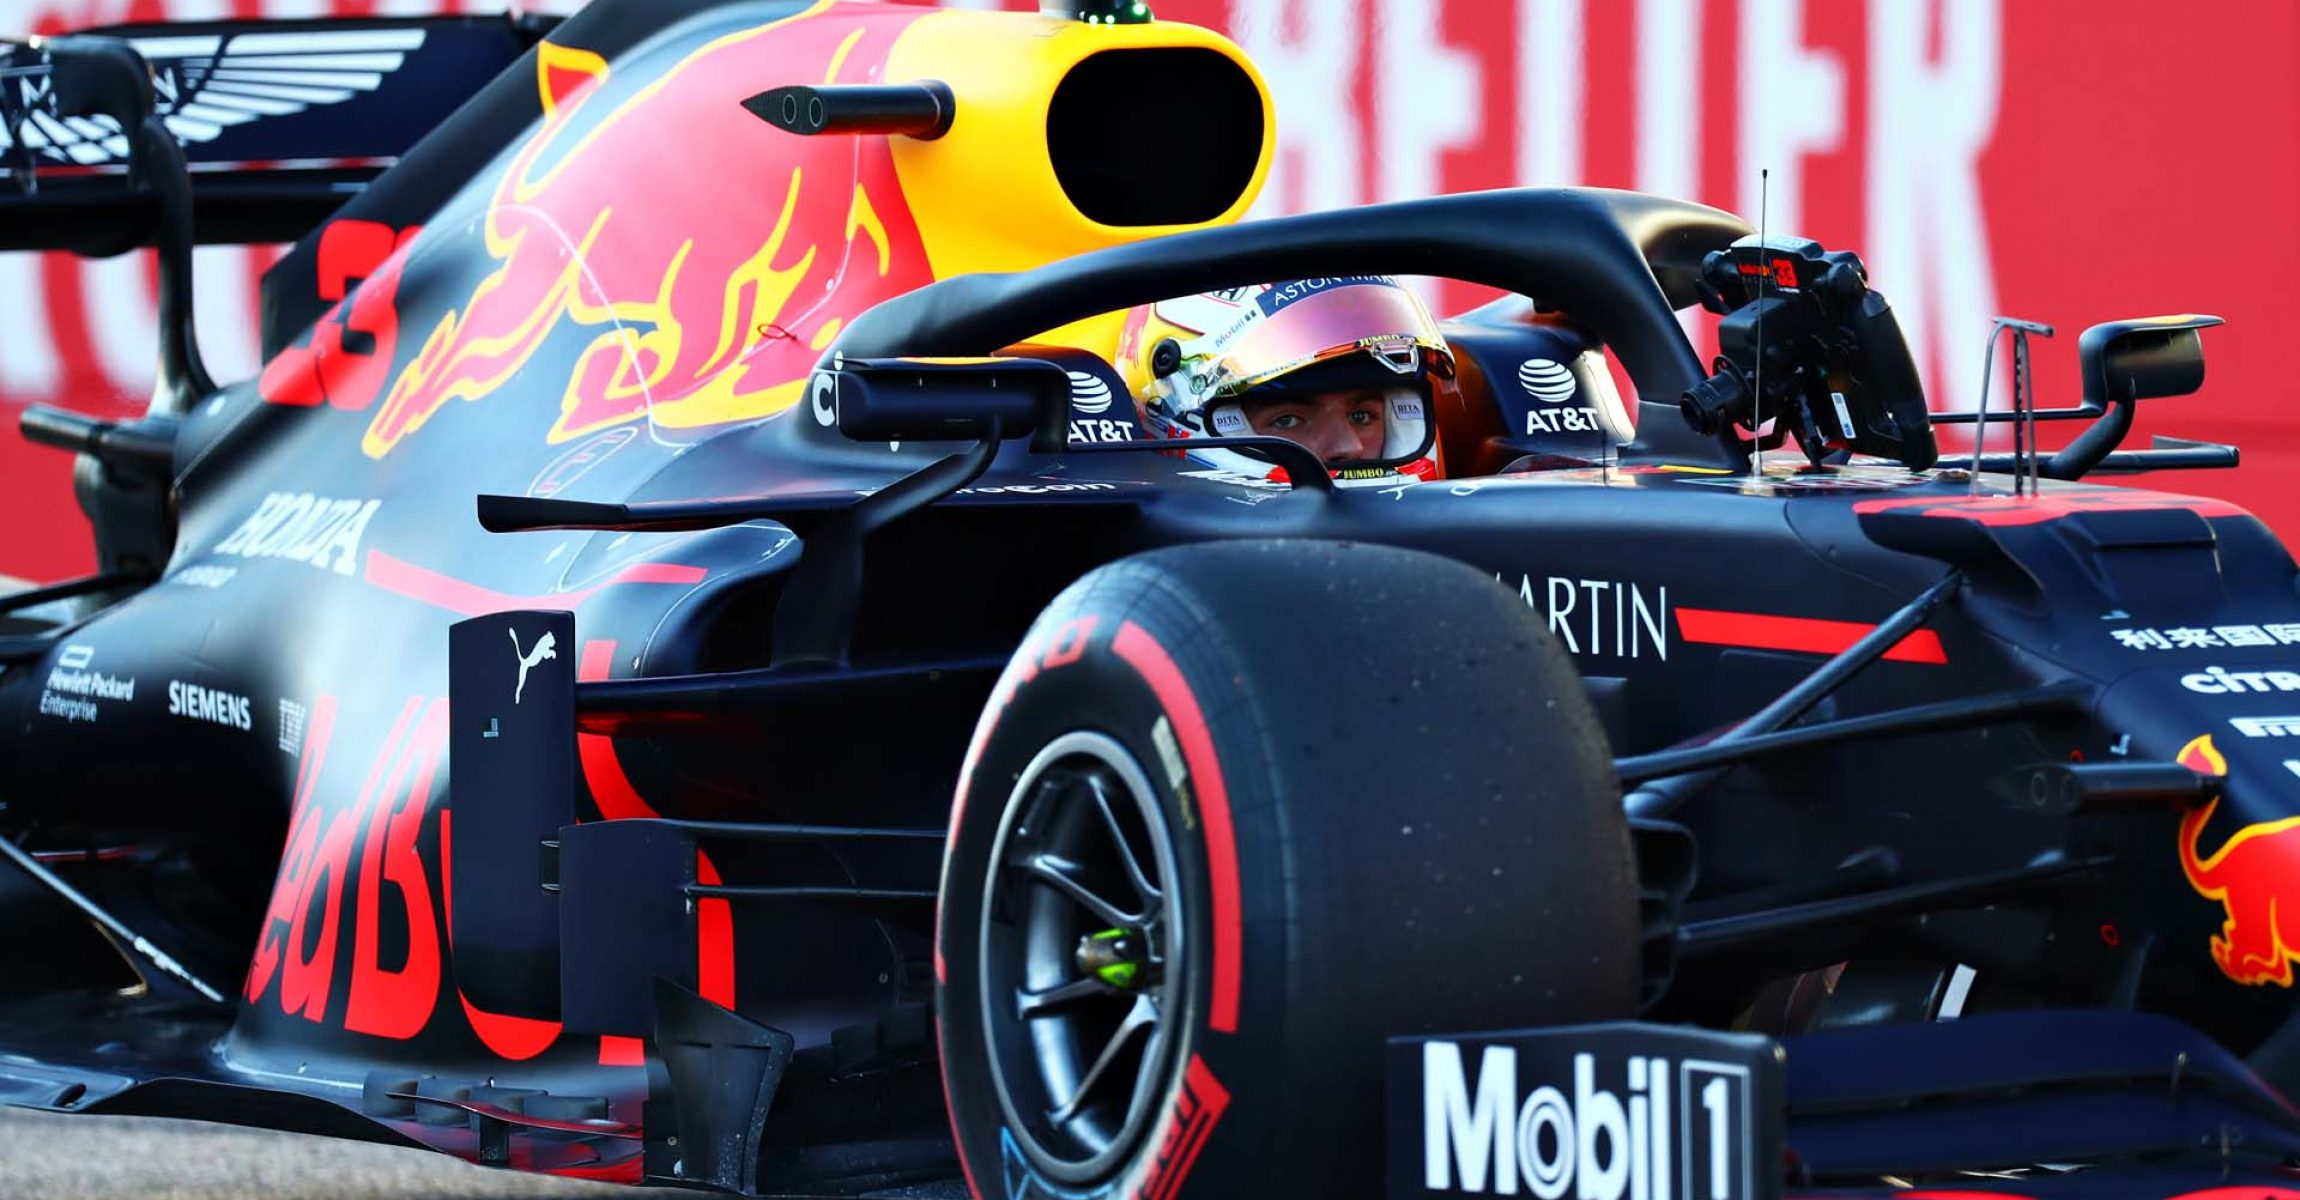 AUSTIN, TEXAS - NOVEMBER 02: Third place qualifier Max Verstappen of Netherlands and Red Bull Racing celebrates in parc ferme during qualifying for the F1 Grand Prix of USA at Circuit of The Americas on November 02, 2019 in Austin, Texas. (Photo by Dan Istitene/Getty Images) // Getty Images / Red Bull Content Pool // AP-222MCNH9D1W11 // Usage for editorial use only //